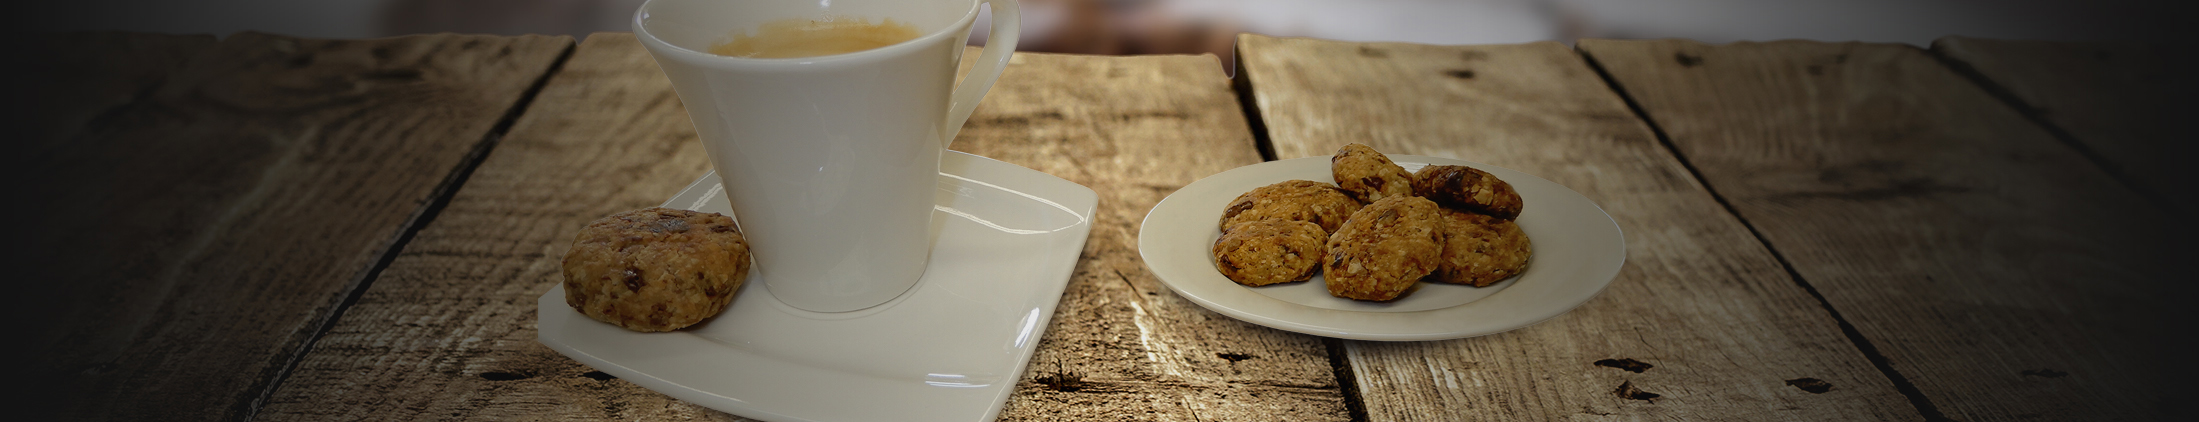 Oatmeal cookies with Ovidias speculoos chocolates